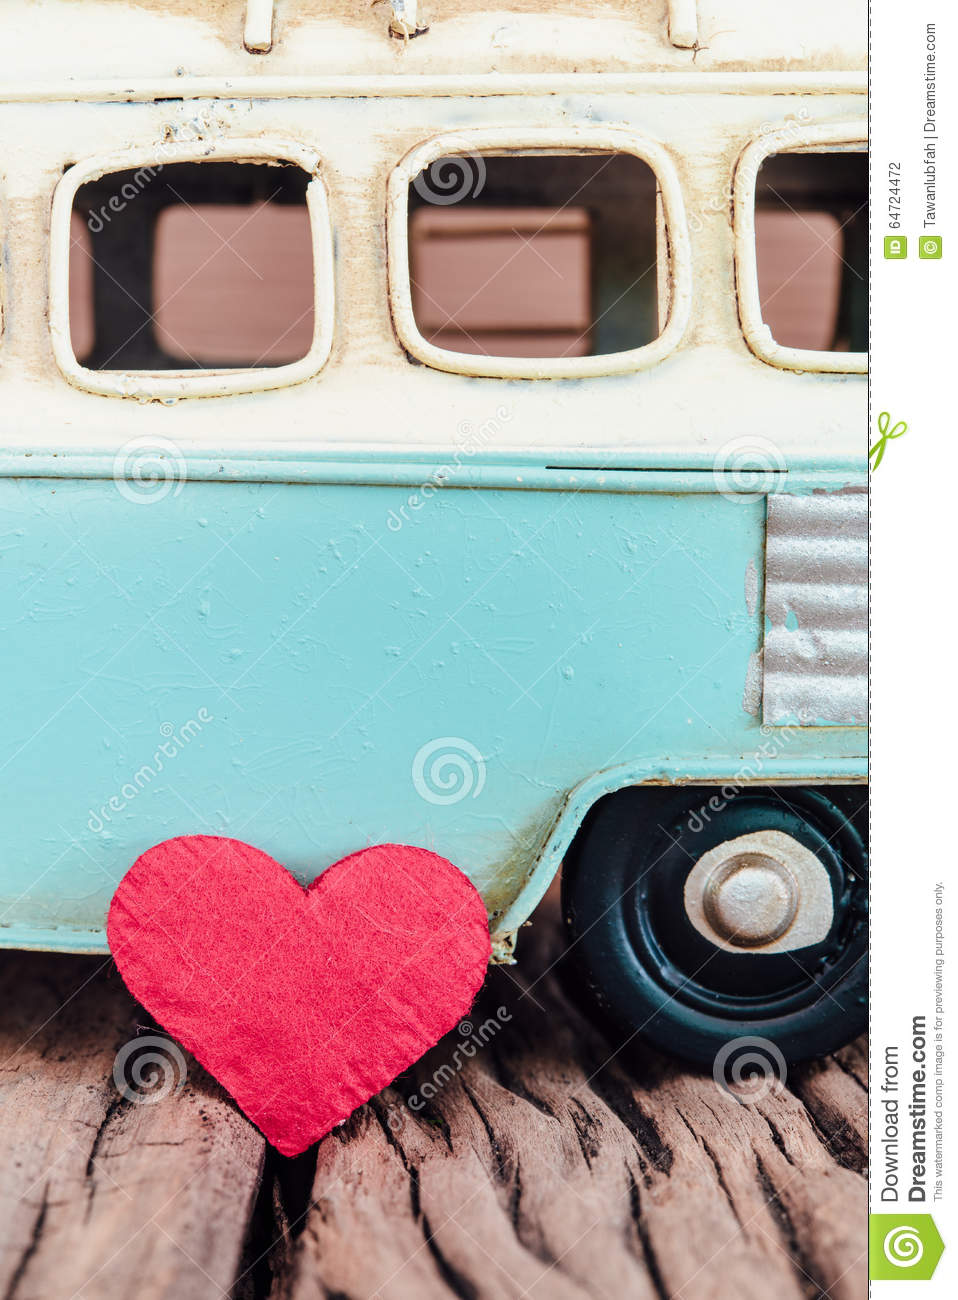 Red heart with part of vintage blue van background on old wooden